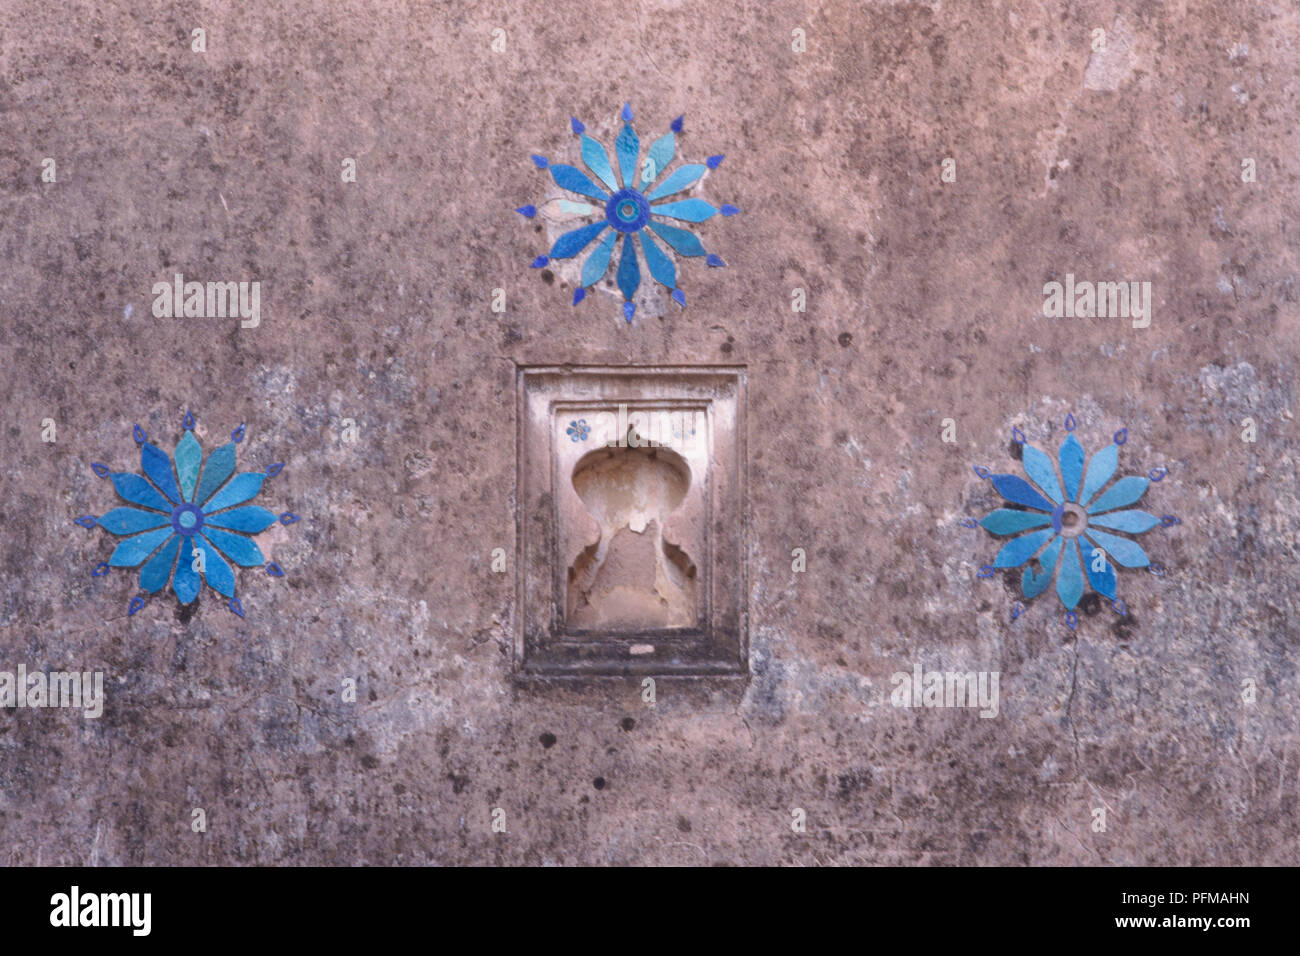 India, Jahangiri Mahal, flower motifs in bright blue and turquoise stone, inlaid into stone wall. - Stock Image